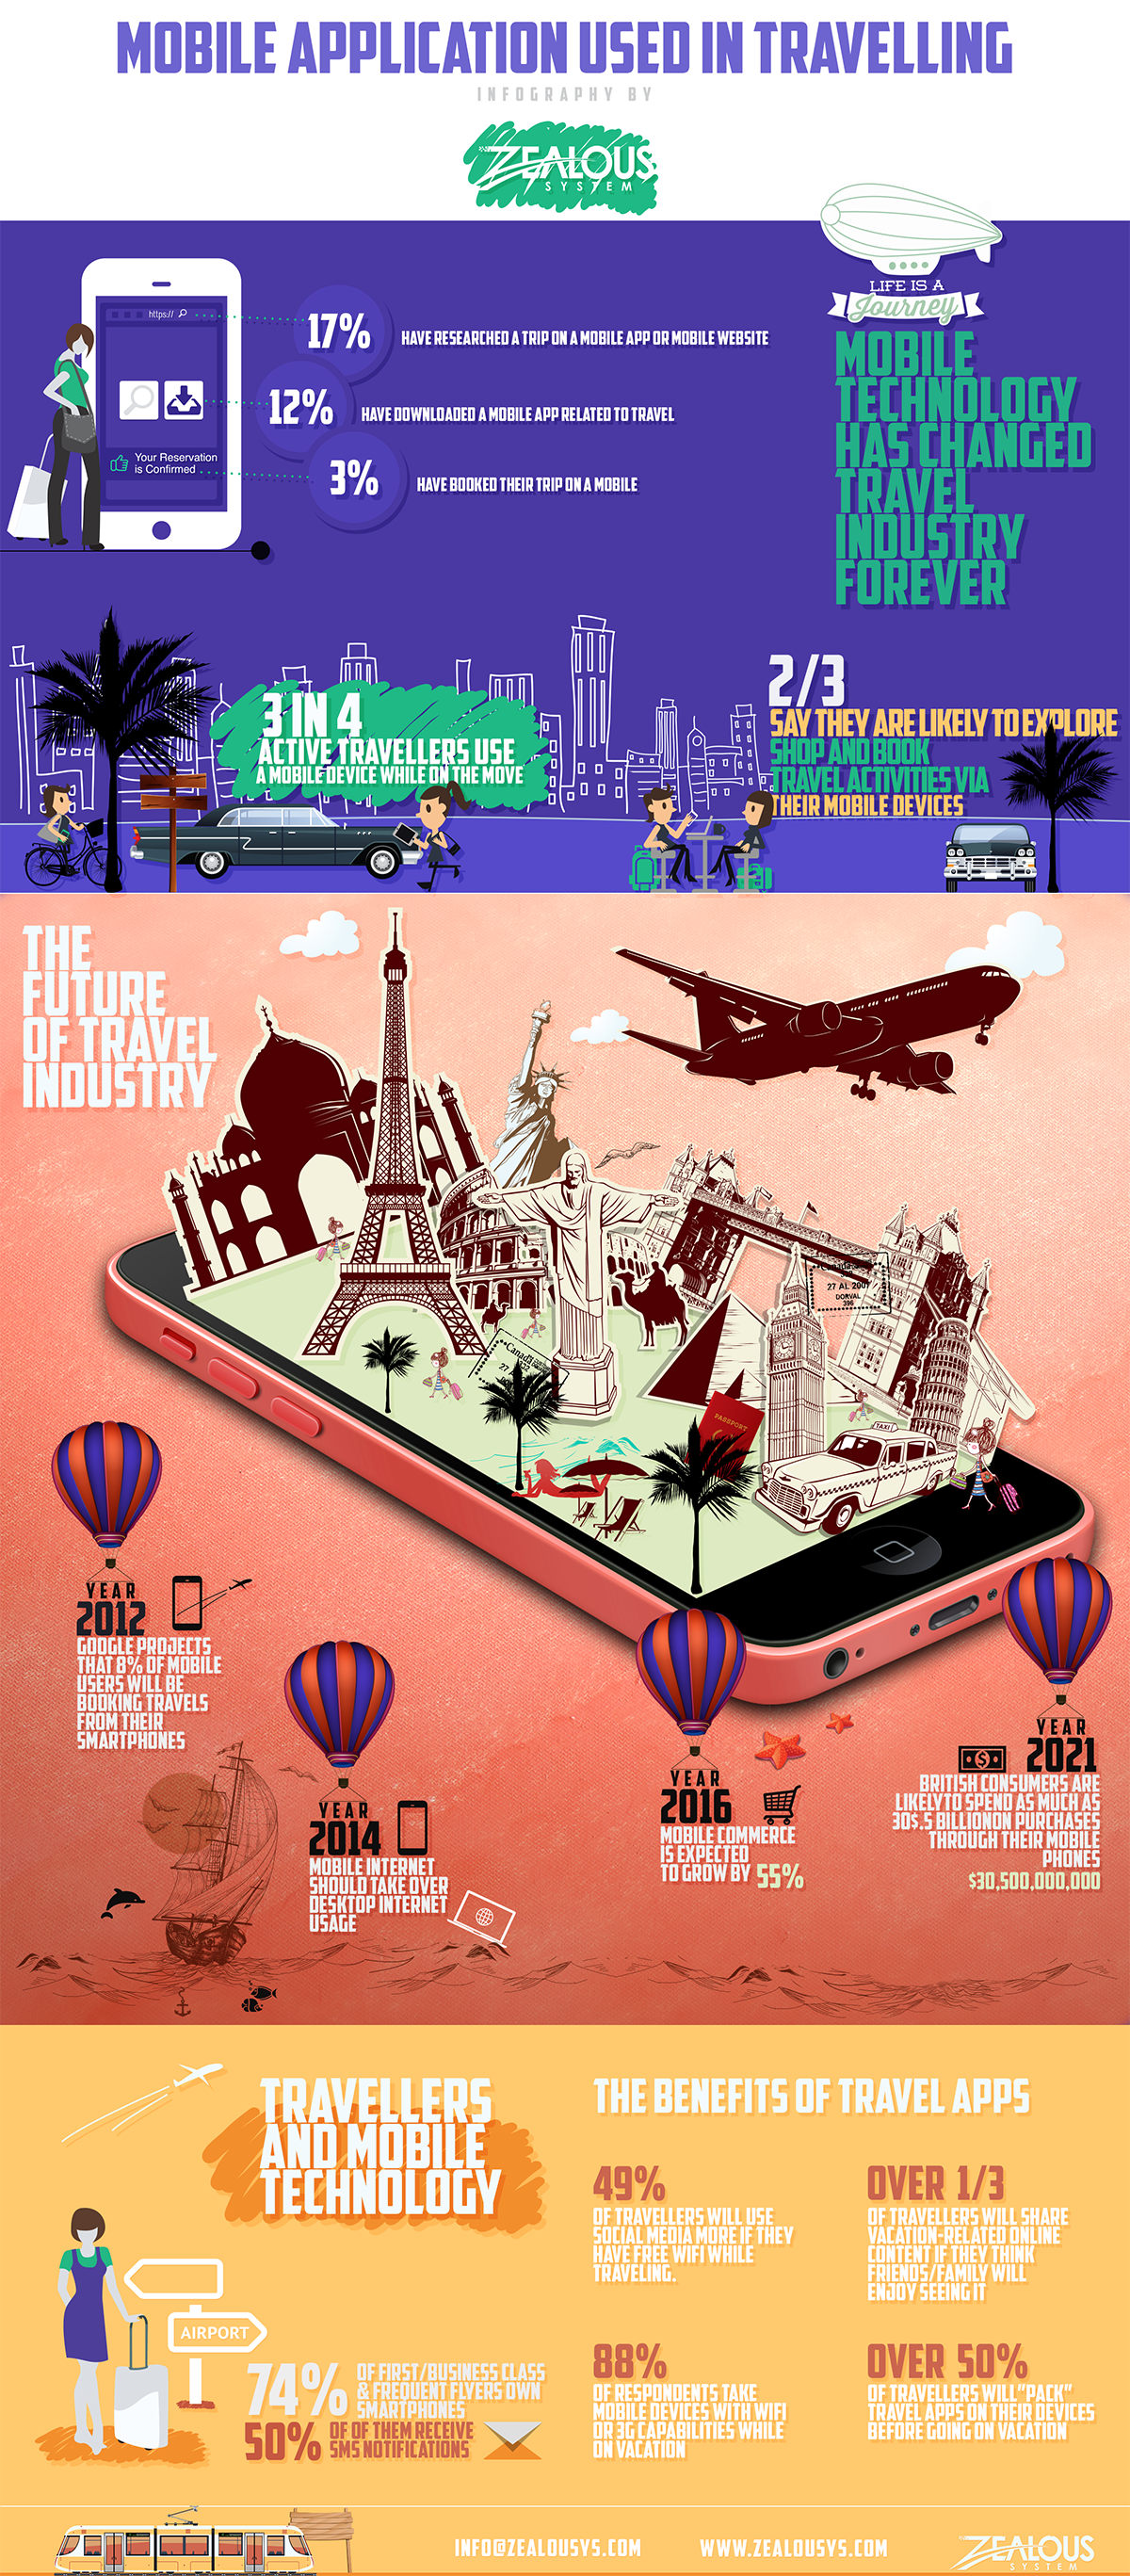 Mobile-Apps-use-in-travelling